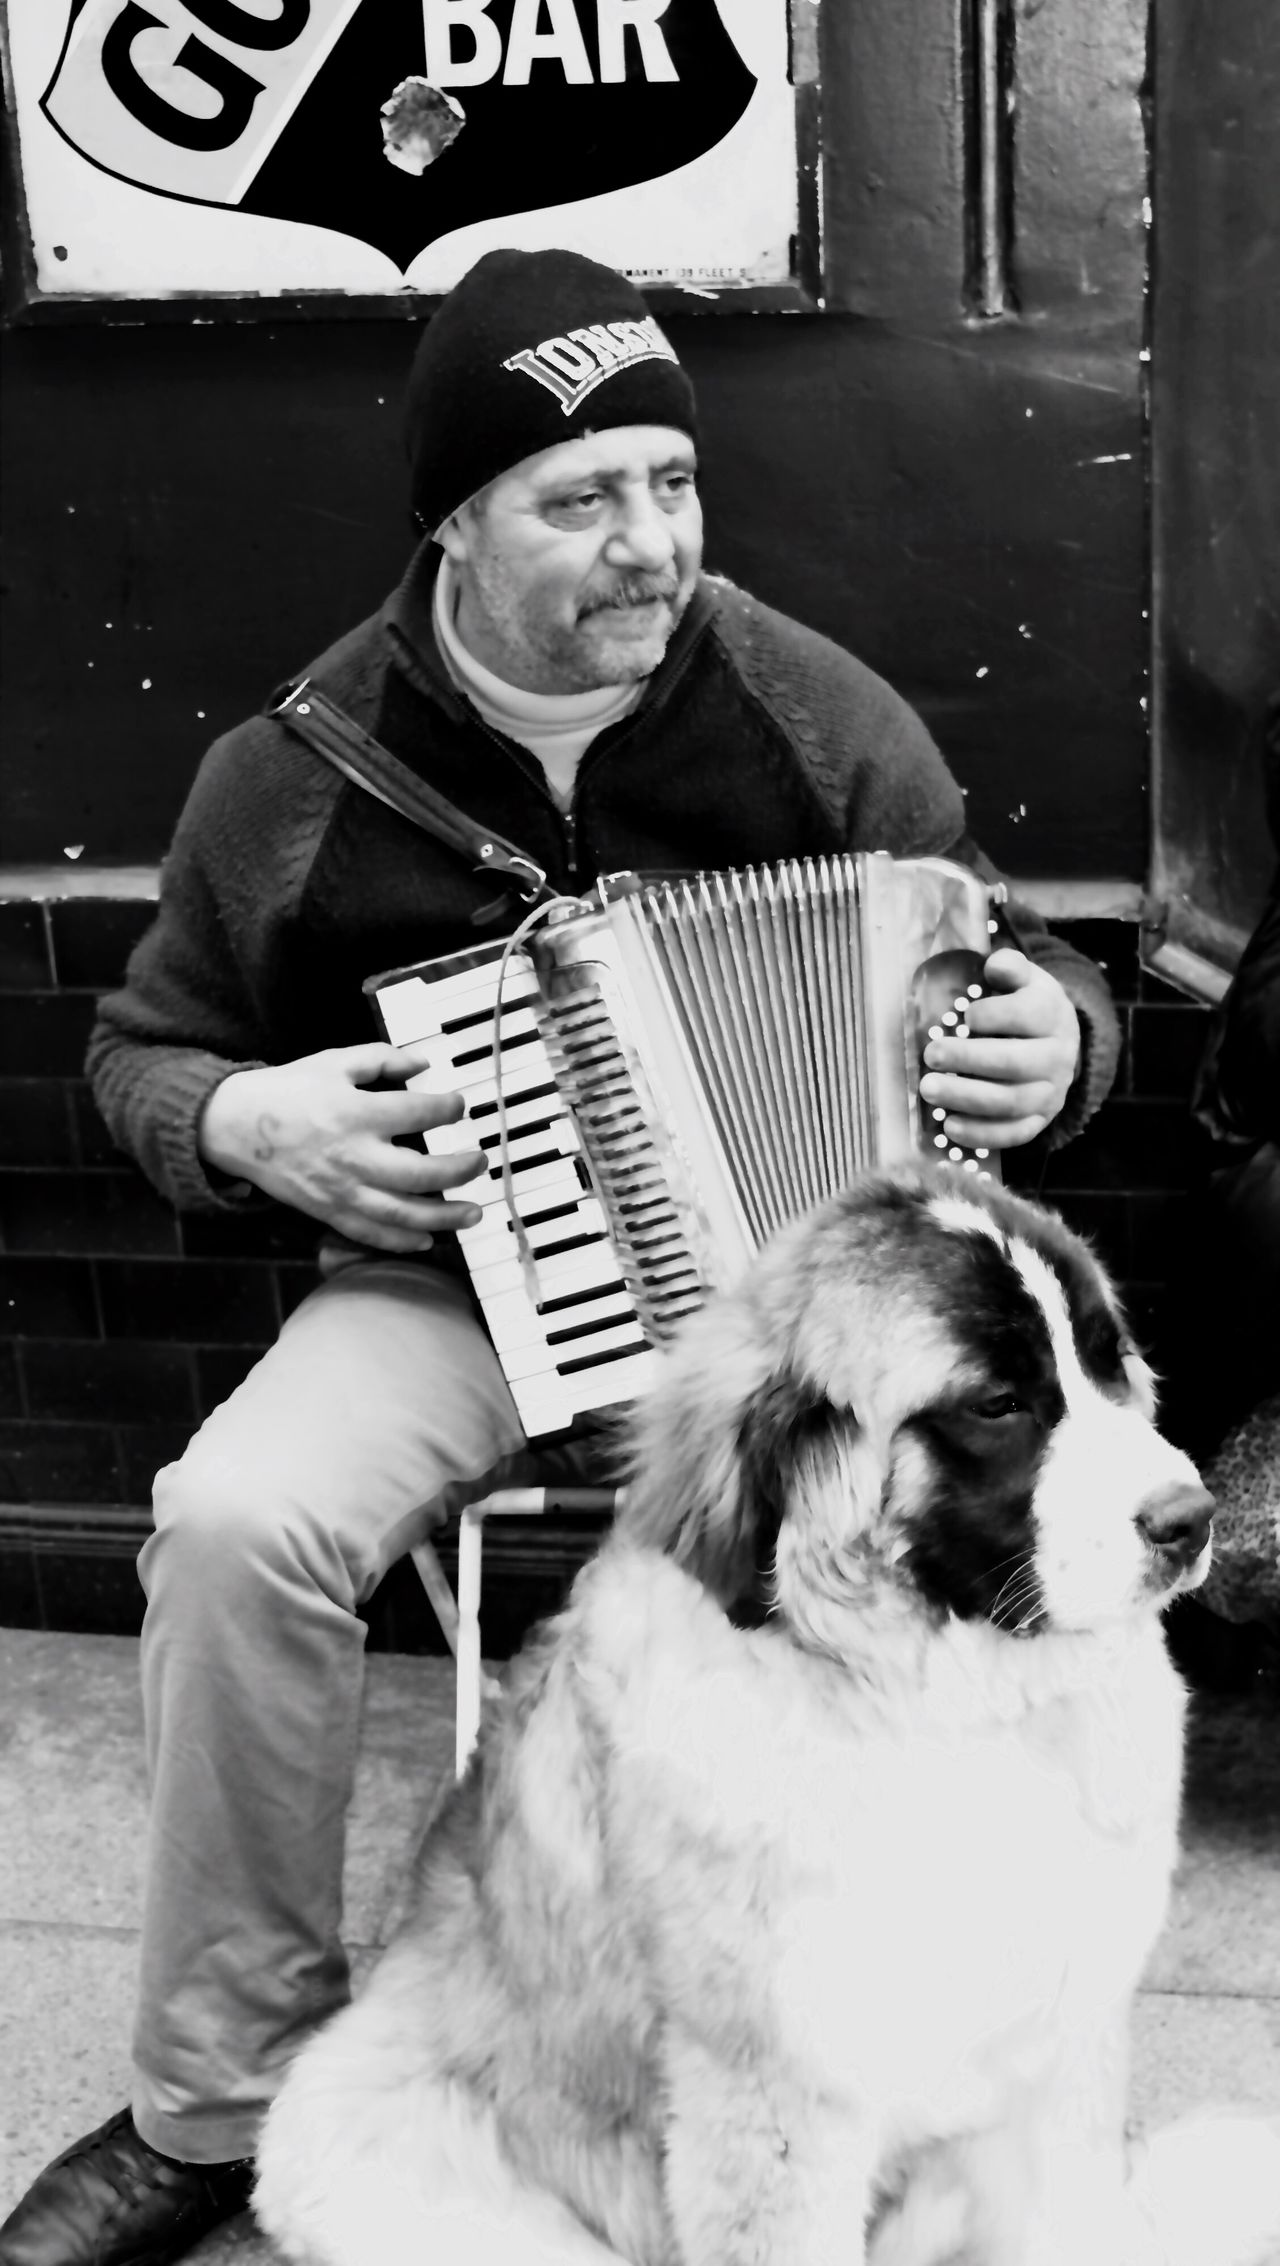 Saint Bernard London Embankment Man Instrument Busker Busking Dog Nikon Nikond5300 Real People Blackandwhite Blackandwhite Photography Black & White Streetphotography Eyeemoninstagram